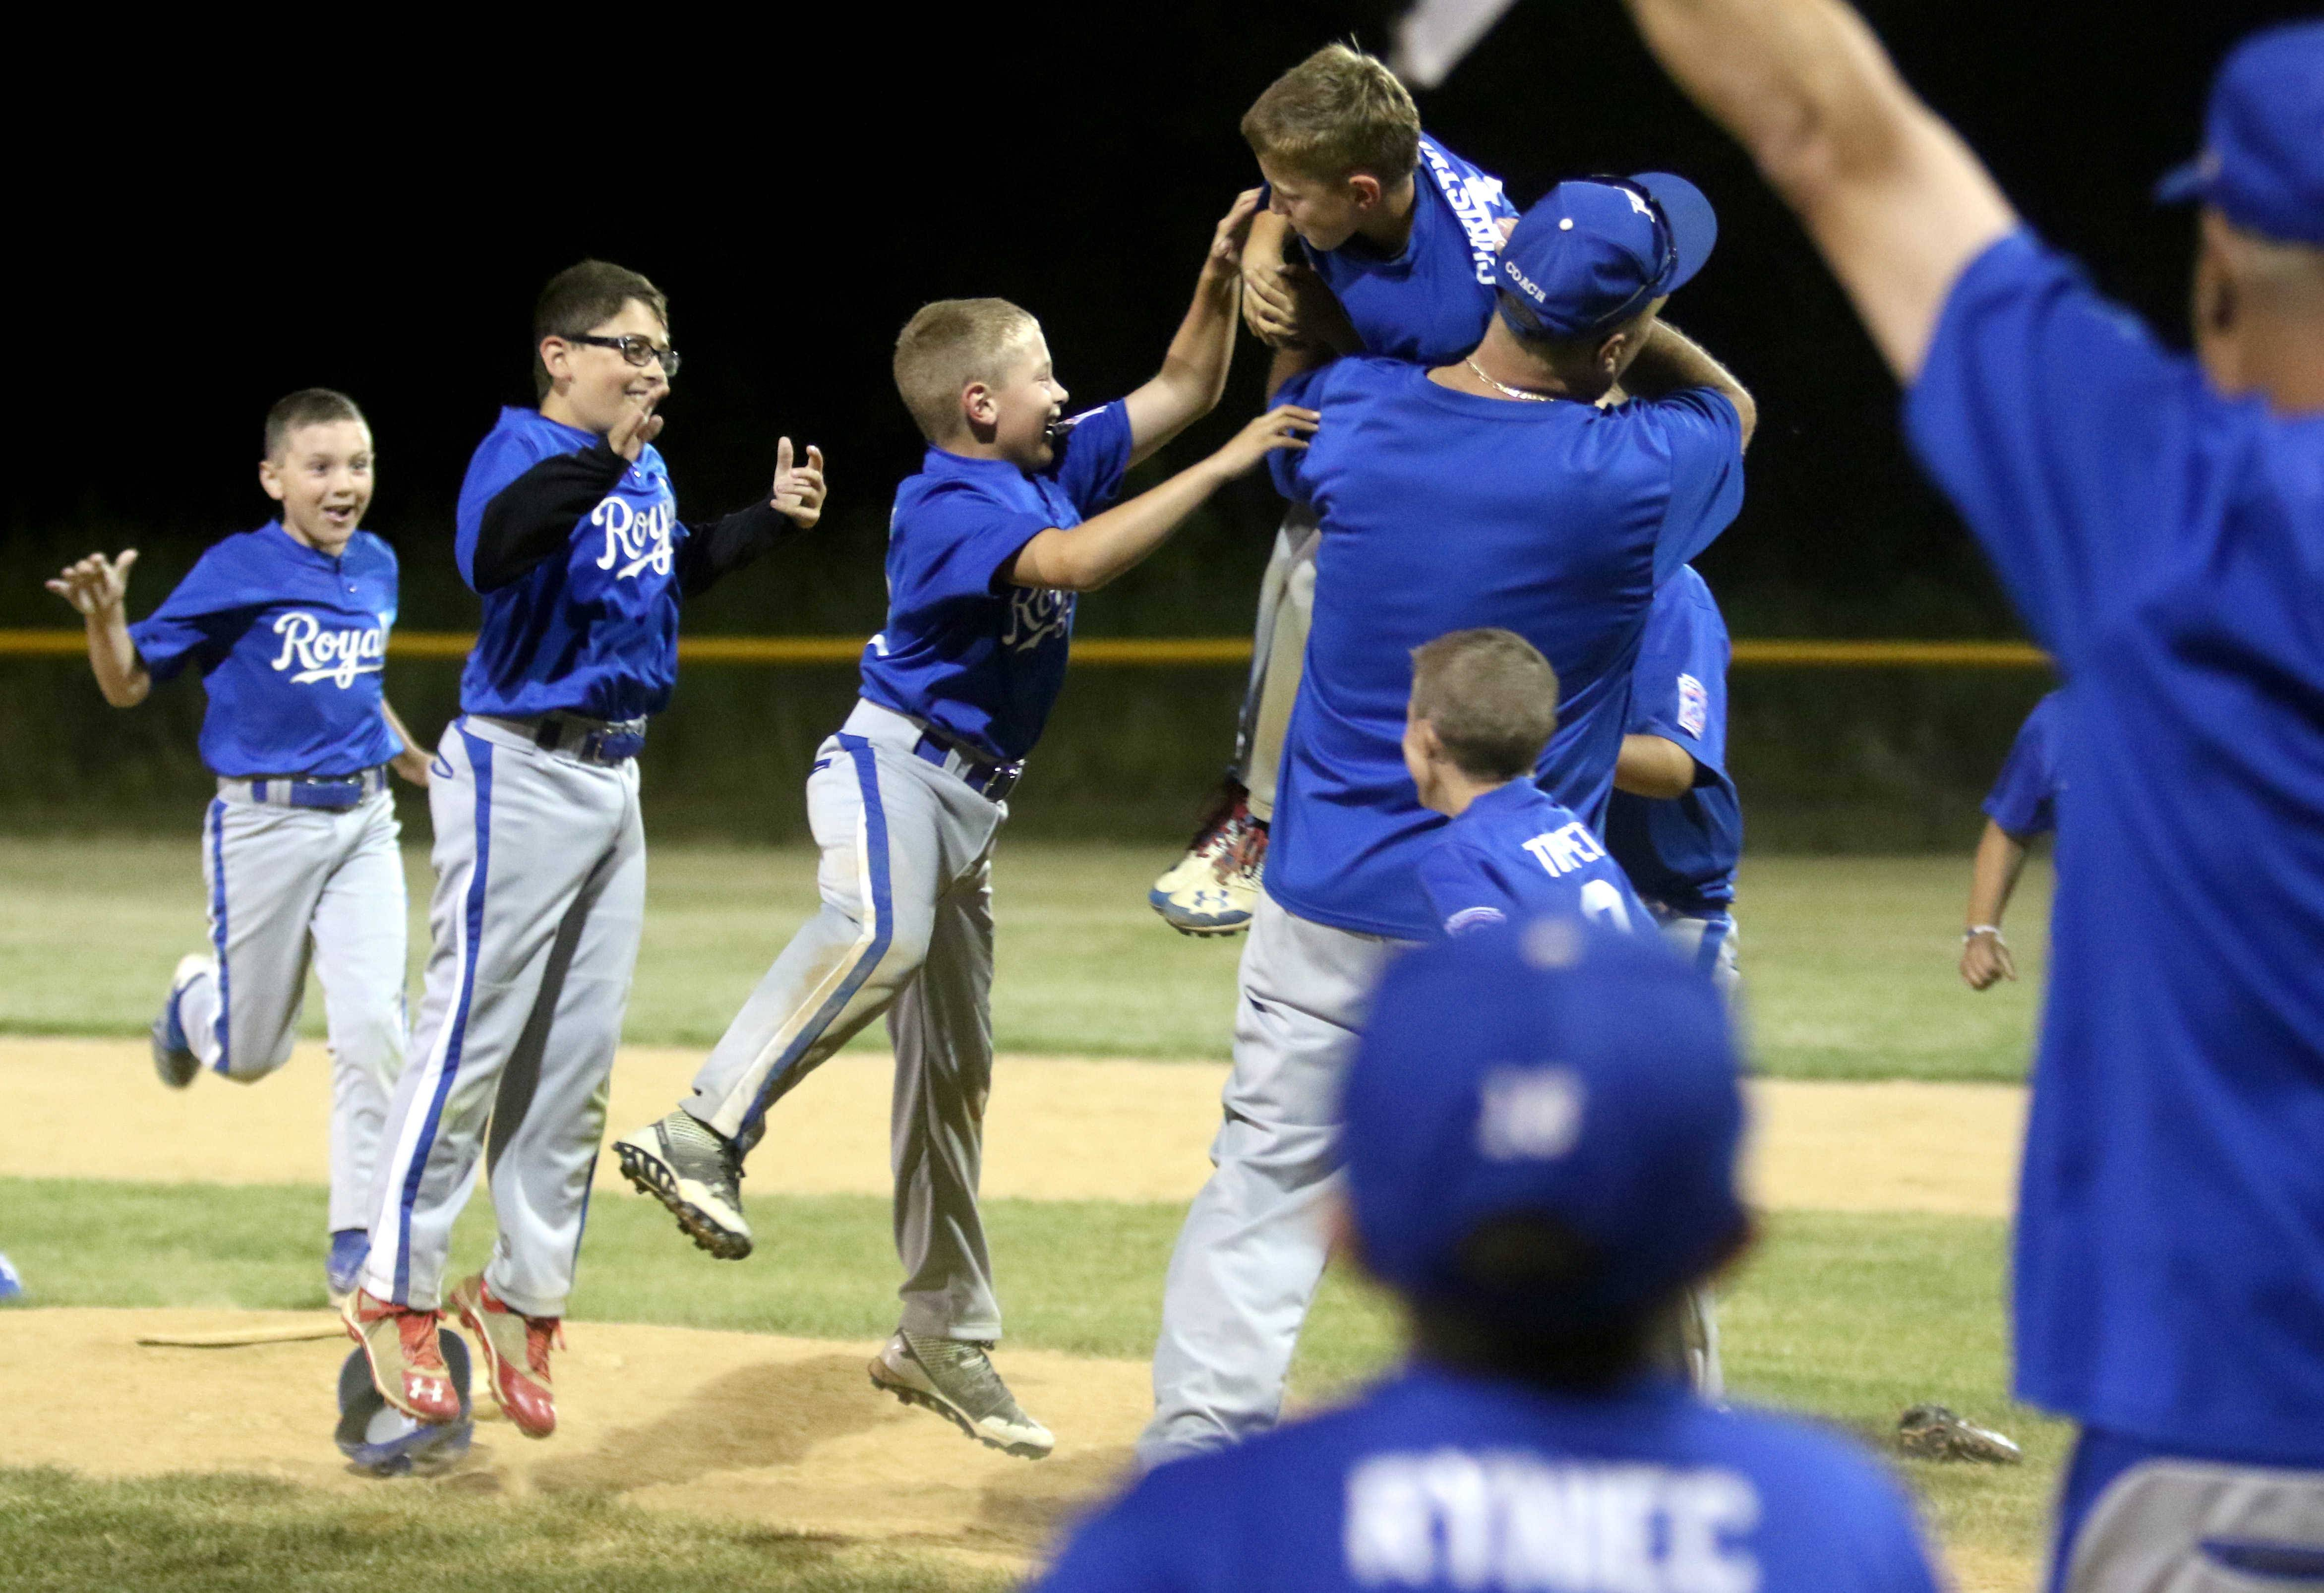 The Bartlett Royals celebrate as they were victorious against the Streamwood Yankees in the Little League Division 13 Minor championship game at Koehler Field in Bartlett Friday night.